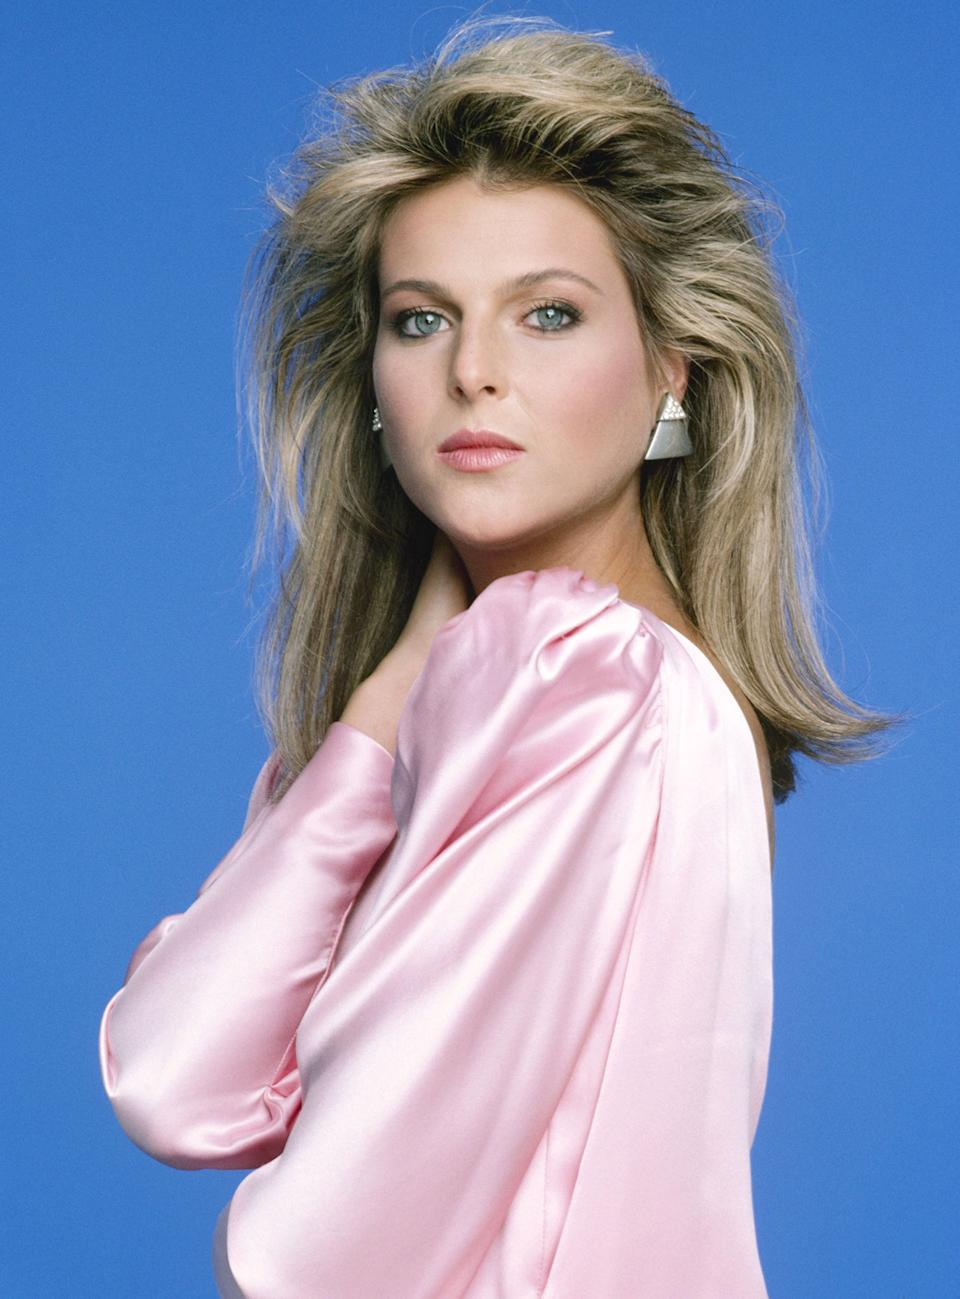 Oxenberg (in 1984) starred in the ABC hit prime-time soap opera Dynasty for two seasons.